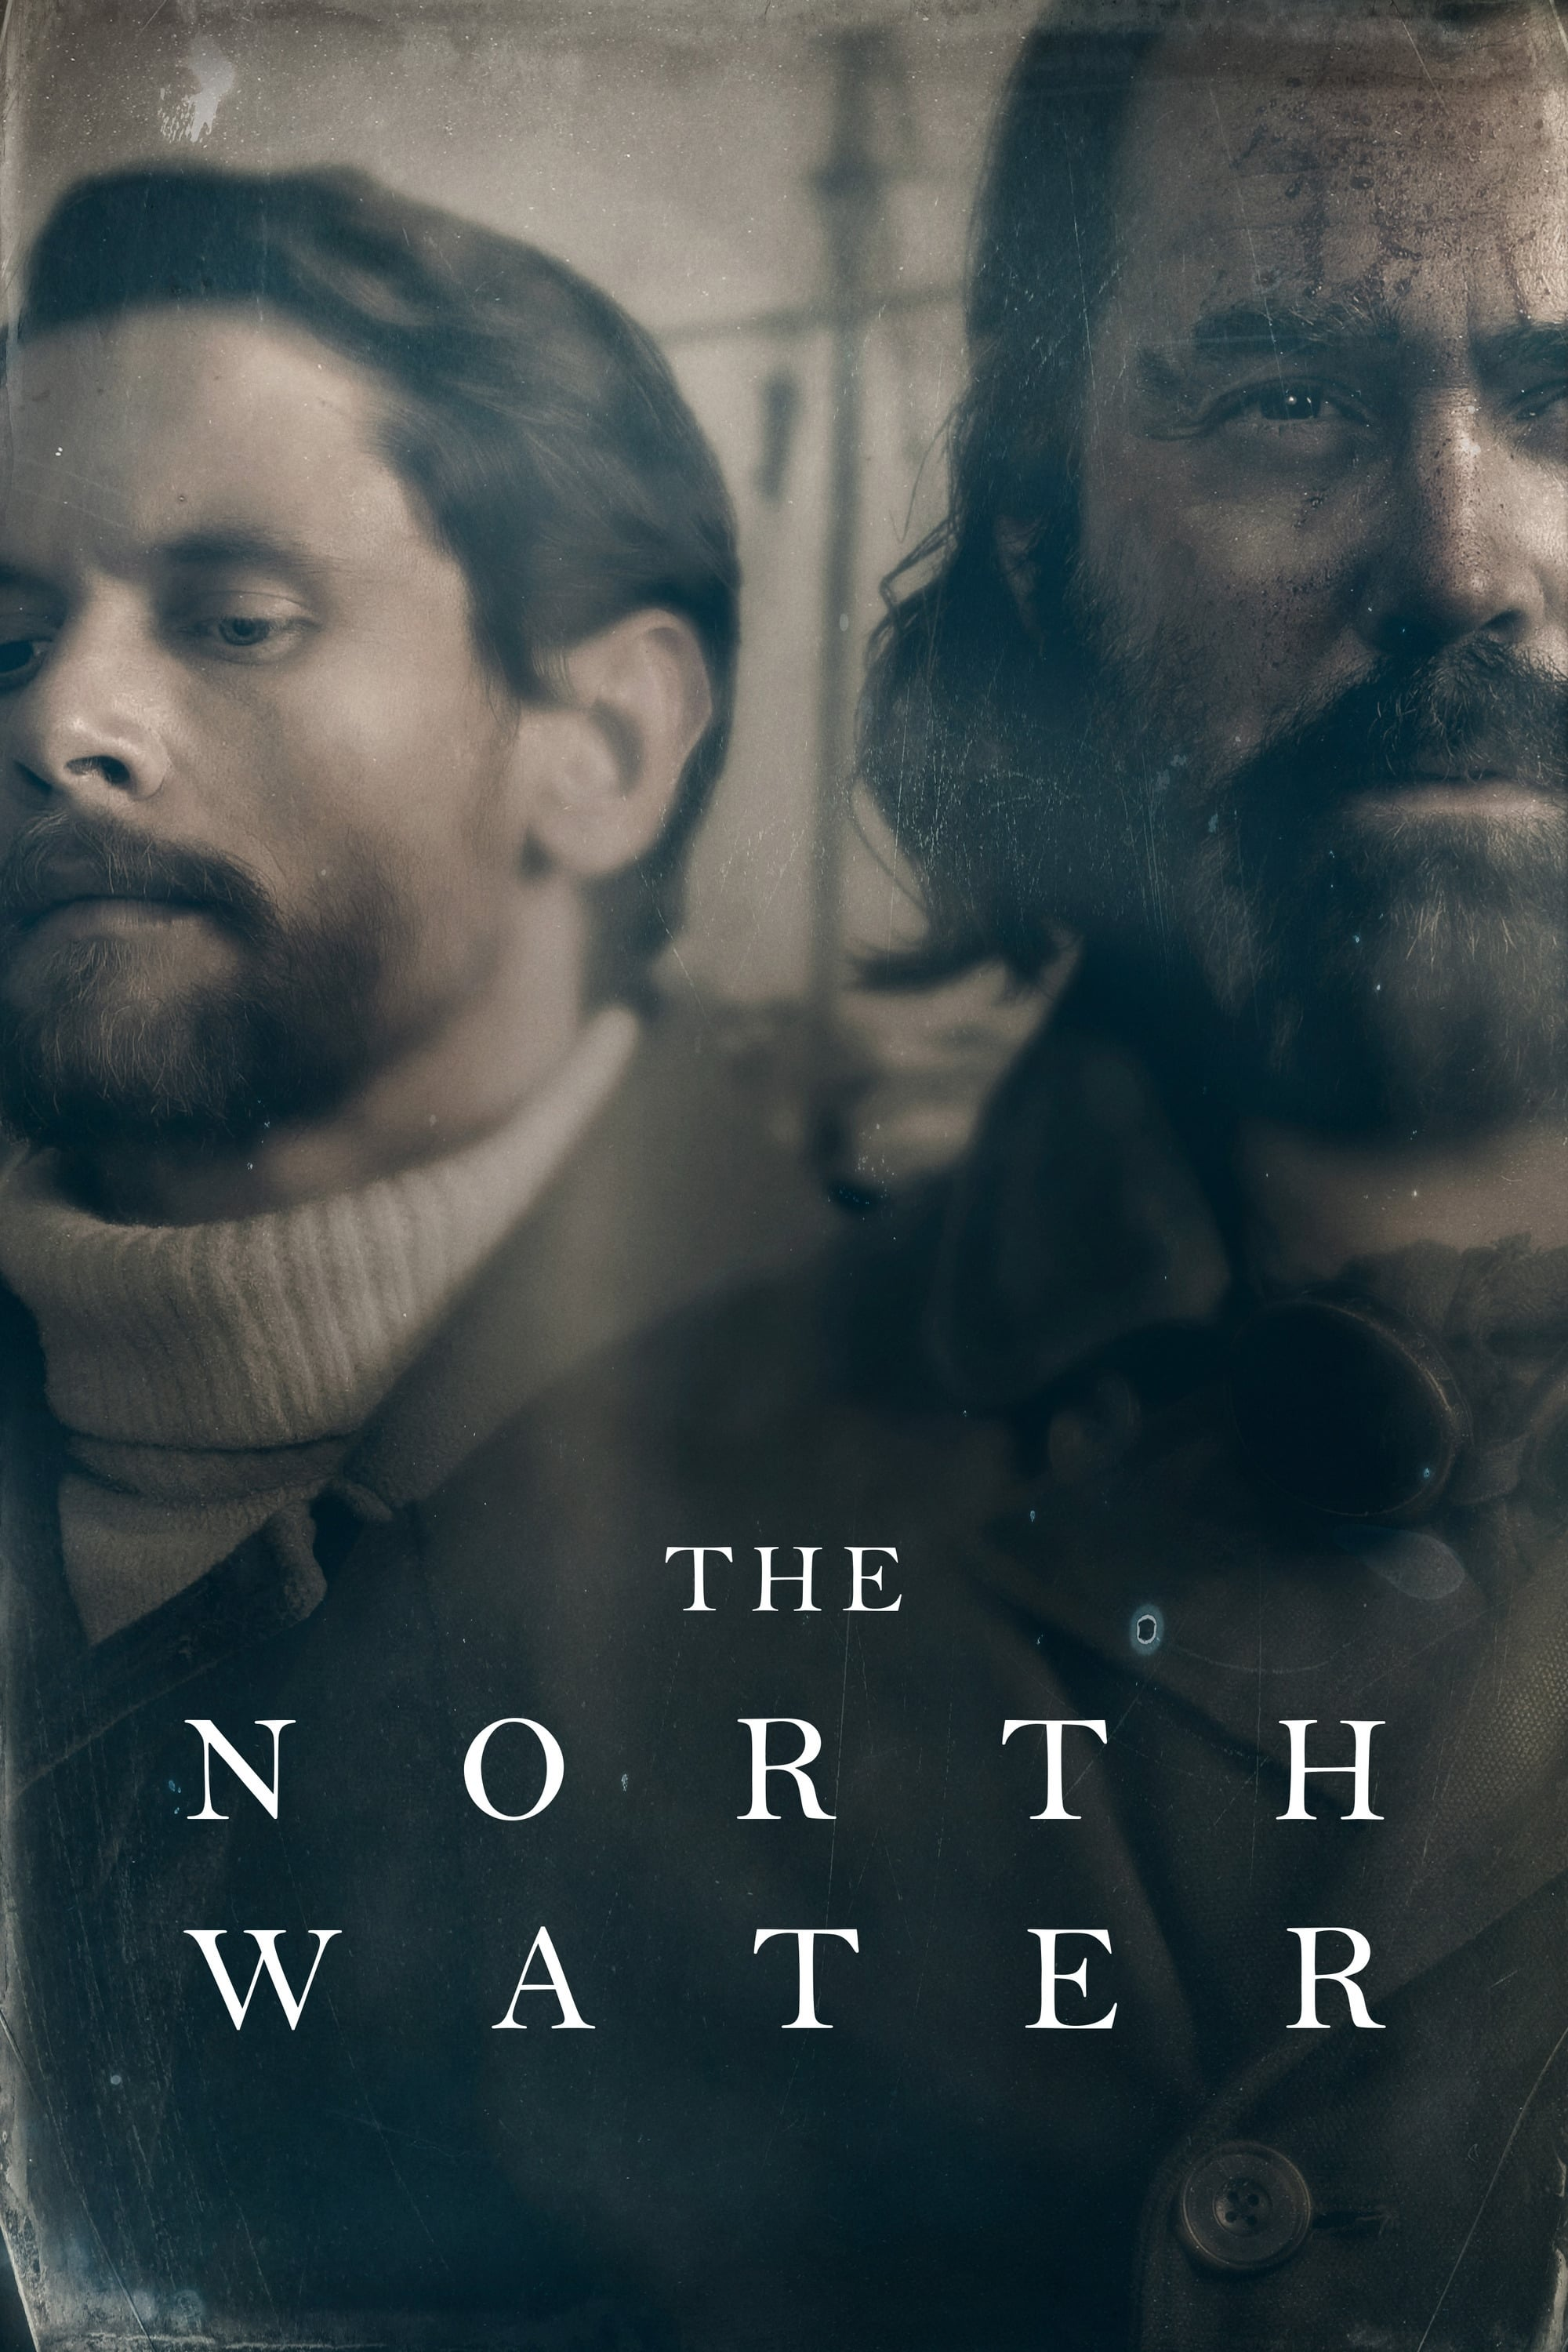 The North Water TV Shows About Based On Novel Or Book